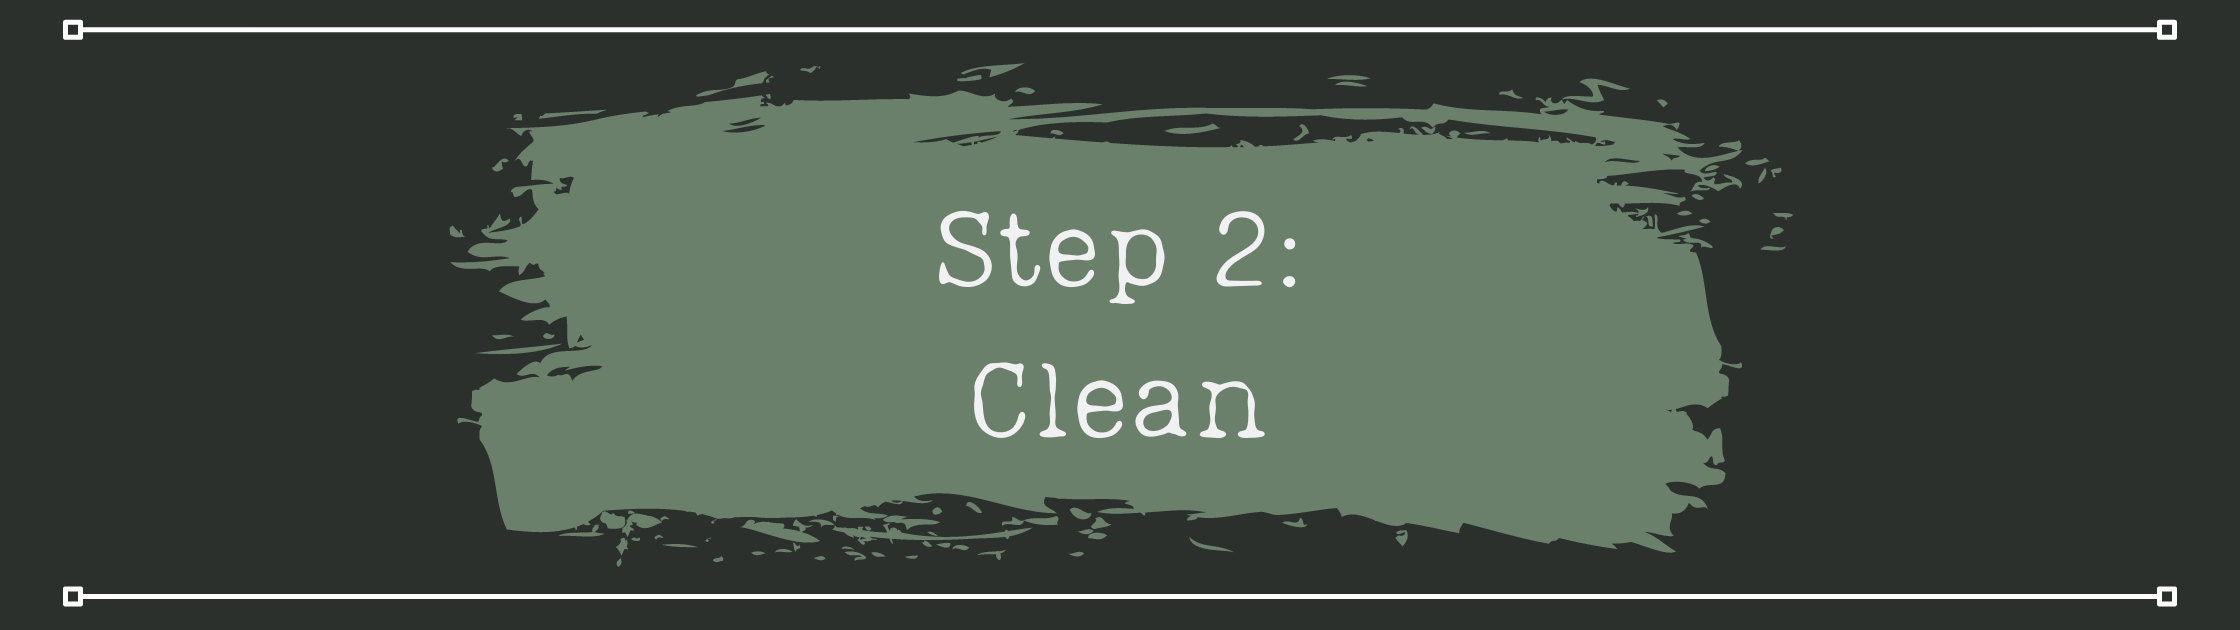 Step 2 - Clean your furniture